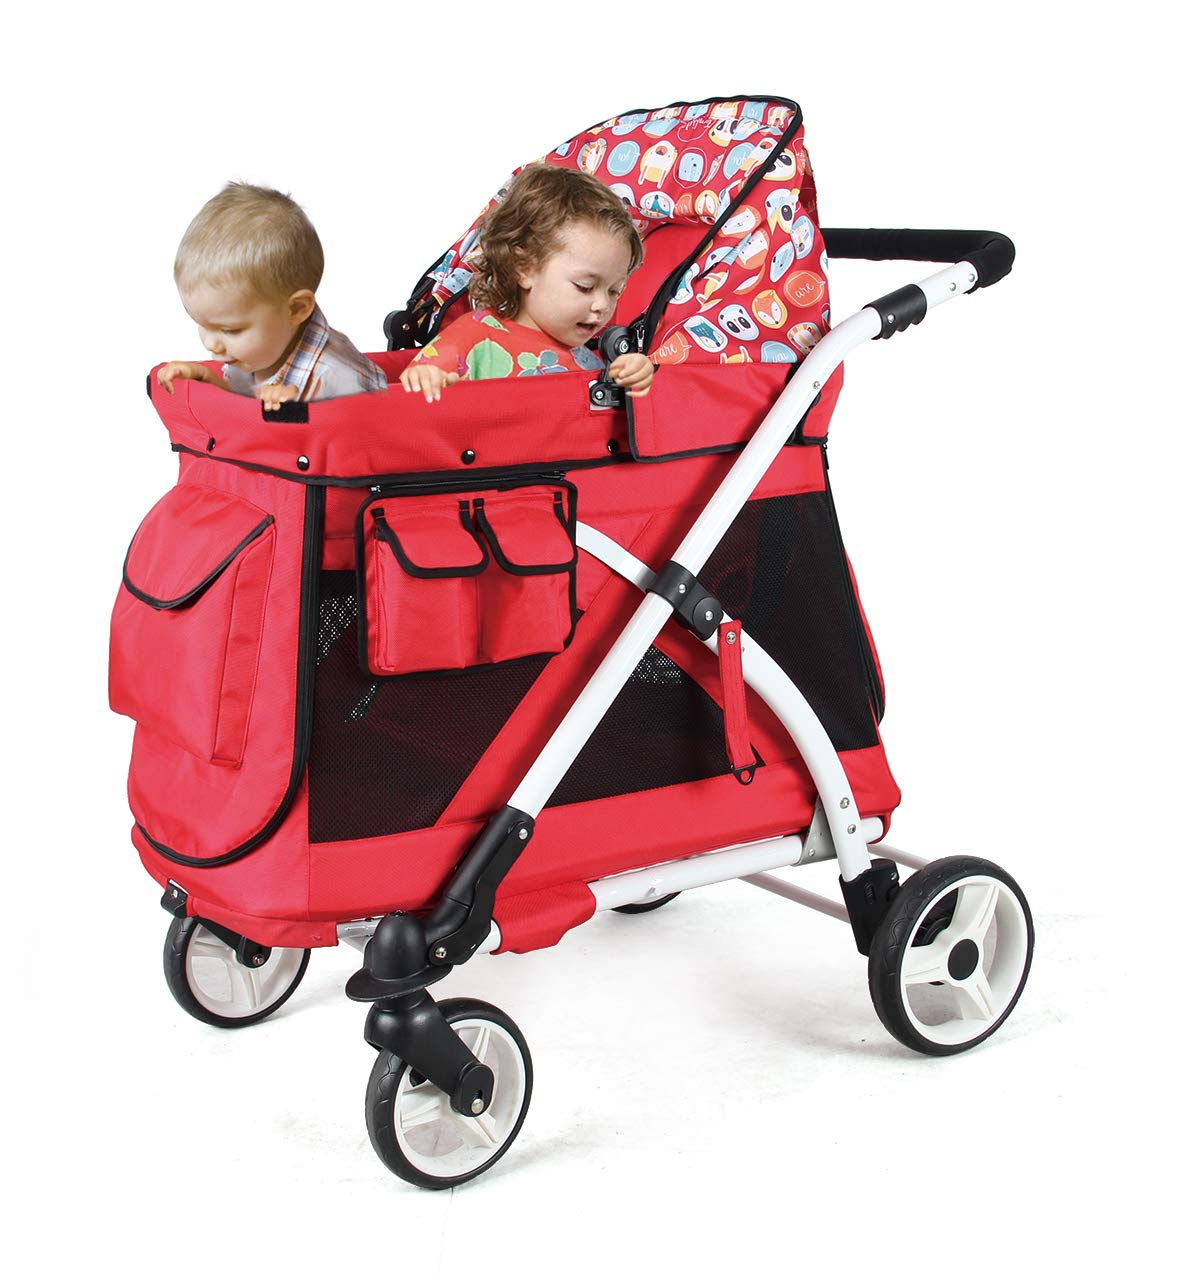 Familidoo Multi-Purpose Folding Single Stroller Wagon with Deep Carriage, Zipper Doors, Removable & Reversible Canopy, Seat (Chariot Mini Red) by FAMILIDOO